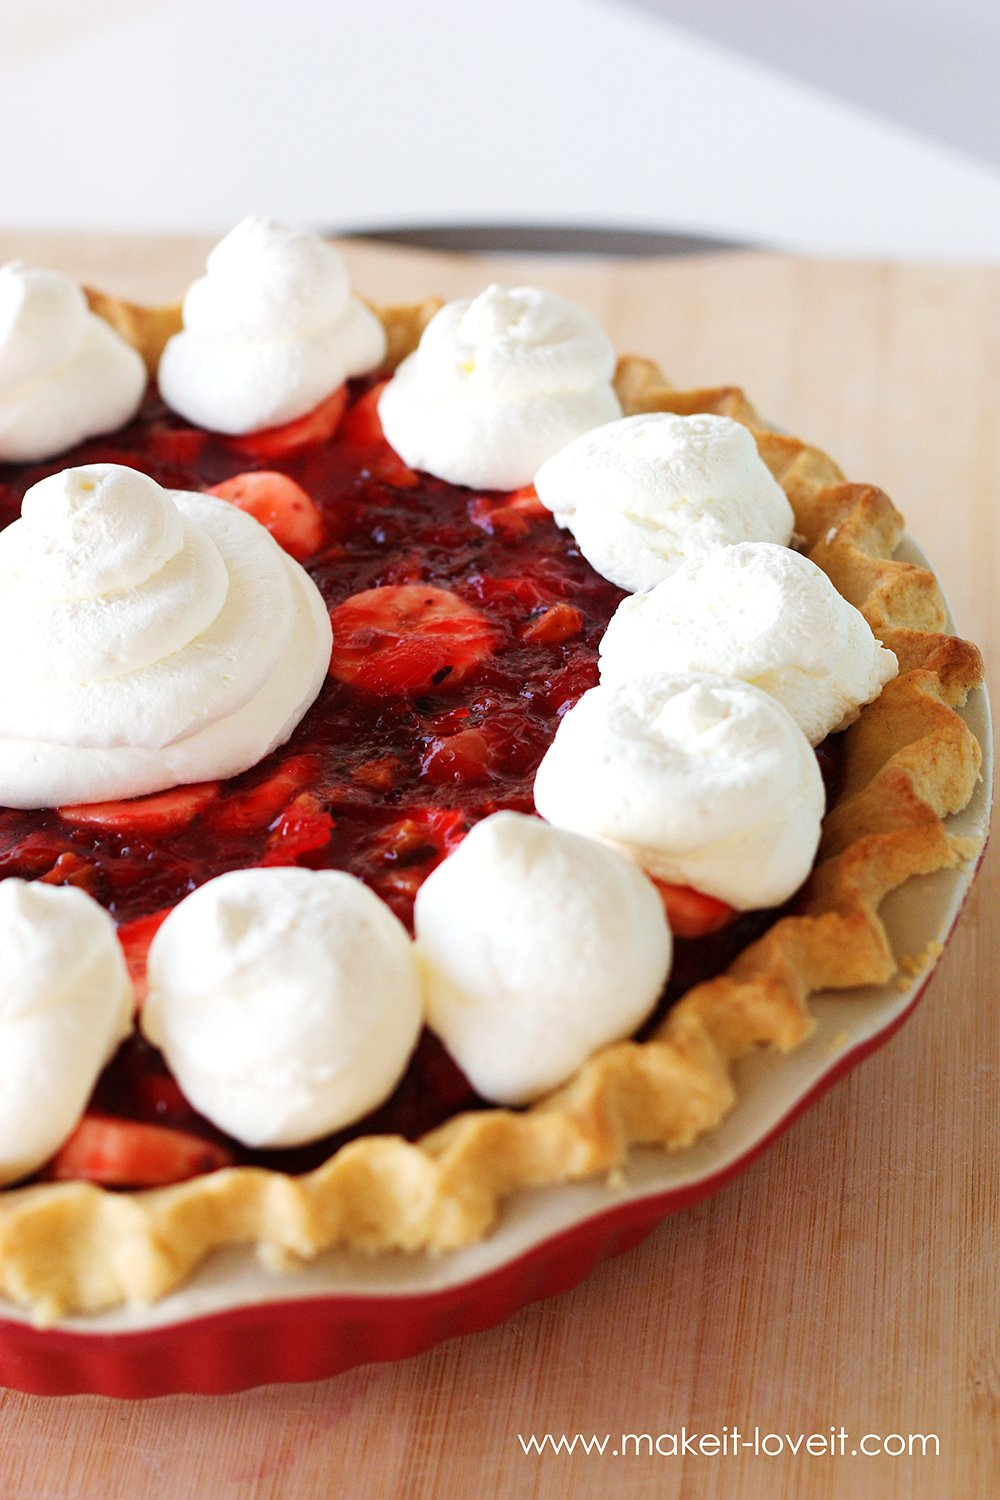 Fresh Berry and Fruit Pie (…Gluten Free version included)